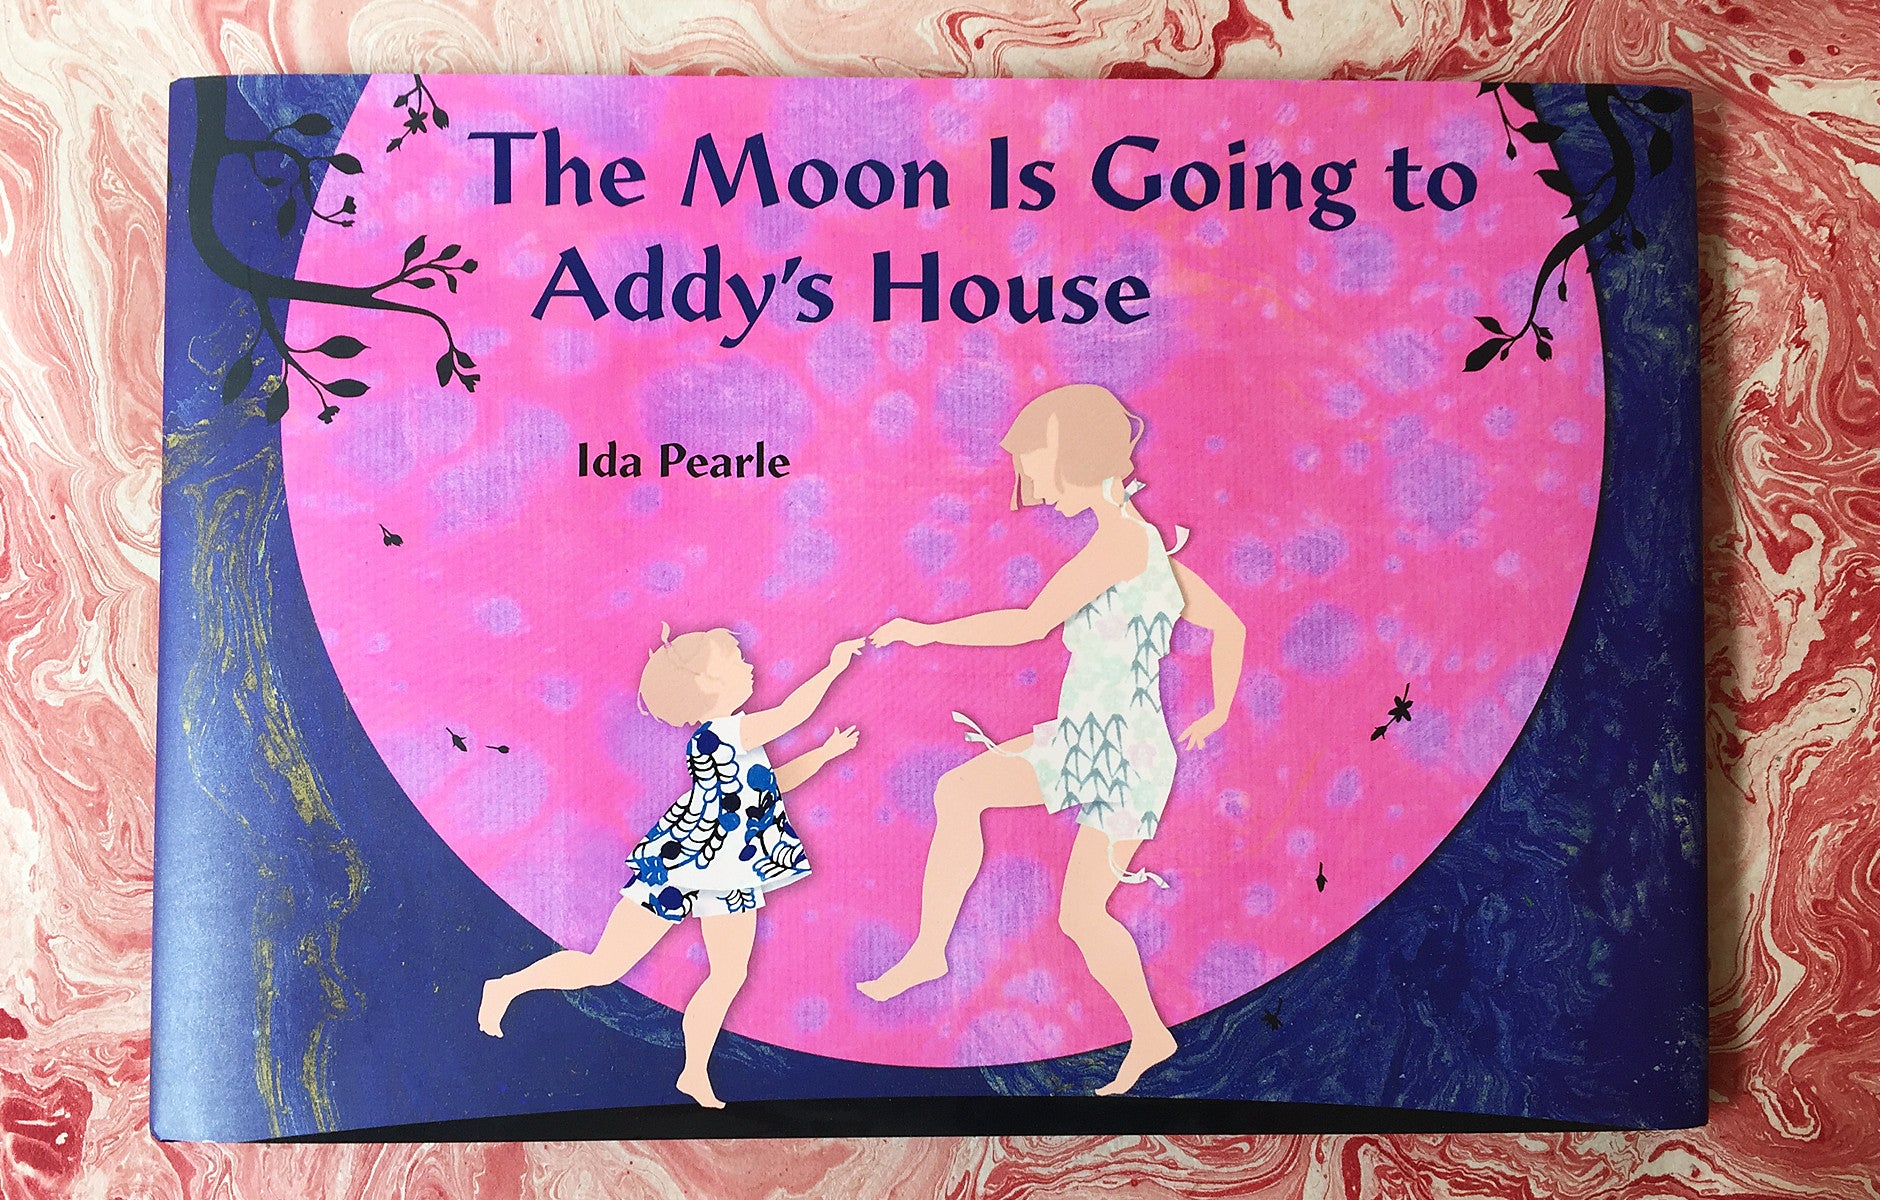 the moon is going to addy's house cover